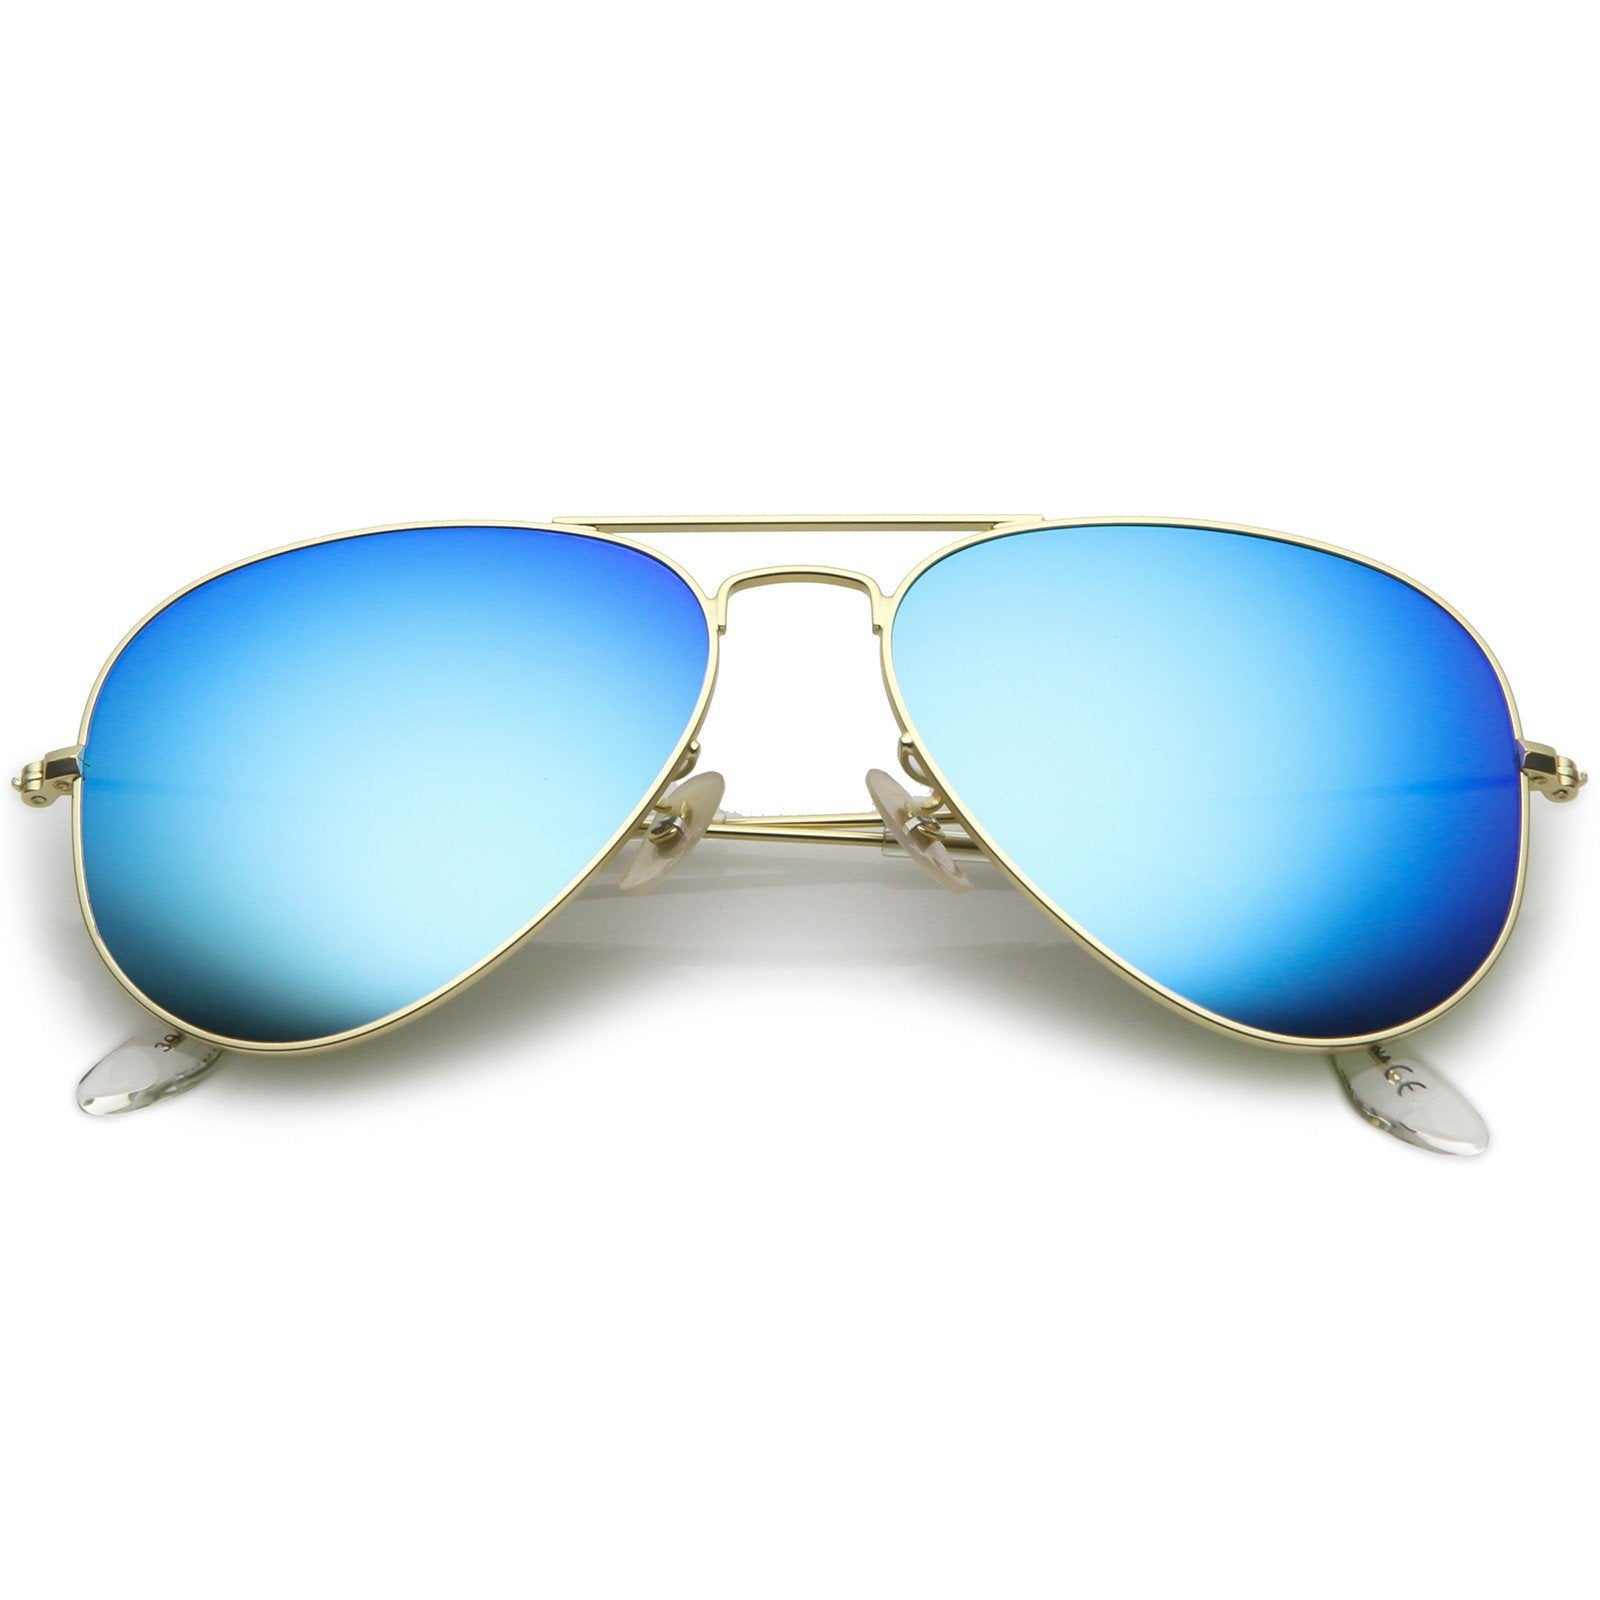 Premium Small Classic Matte Metal Aviator Sunglasses With Colored Mirror Glass Lens 57mm